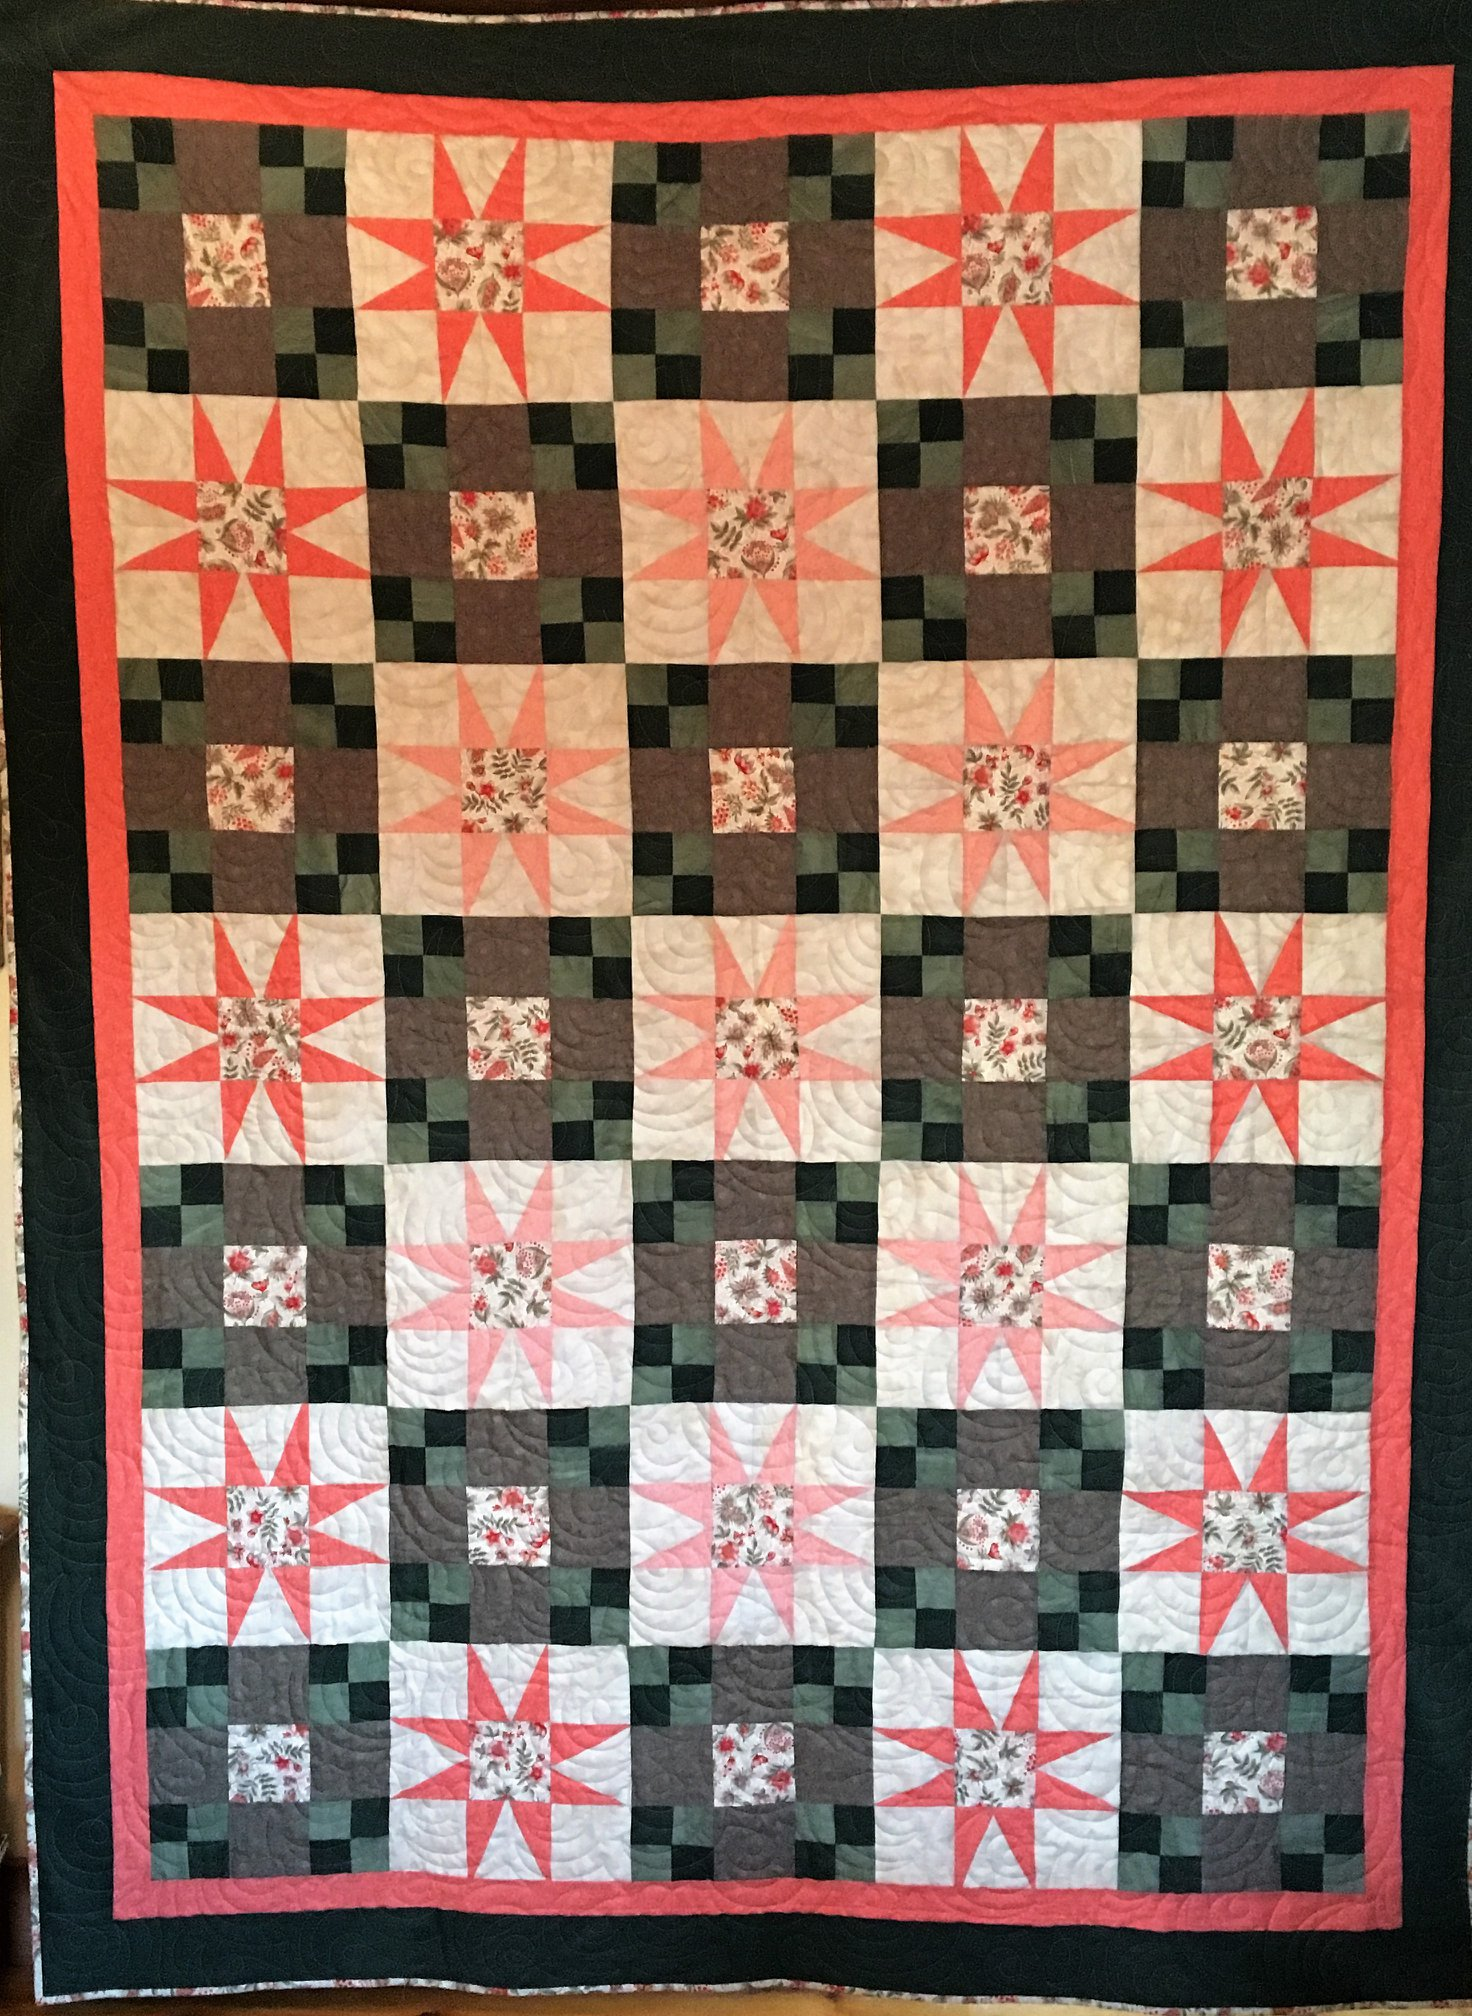 Quilt donated by the Cornish Quilters for the quilt raffle to benefit Hand to Heart